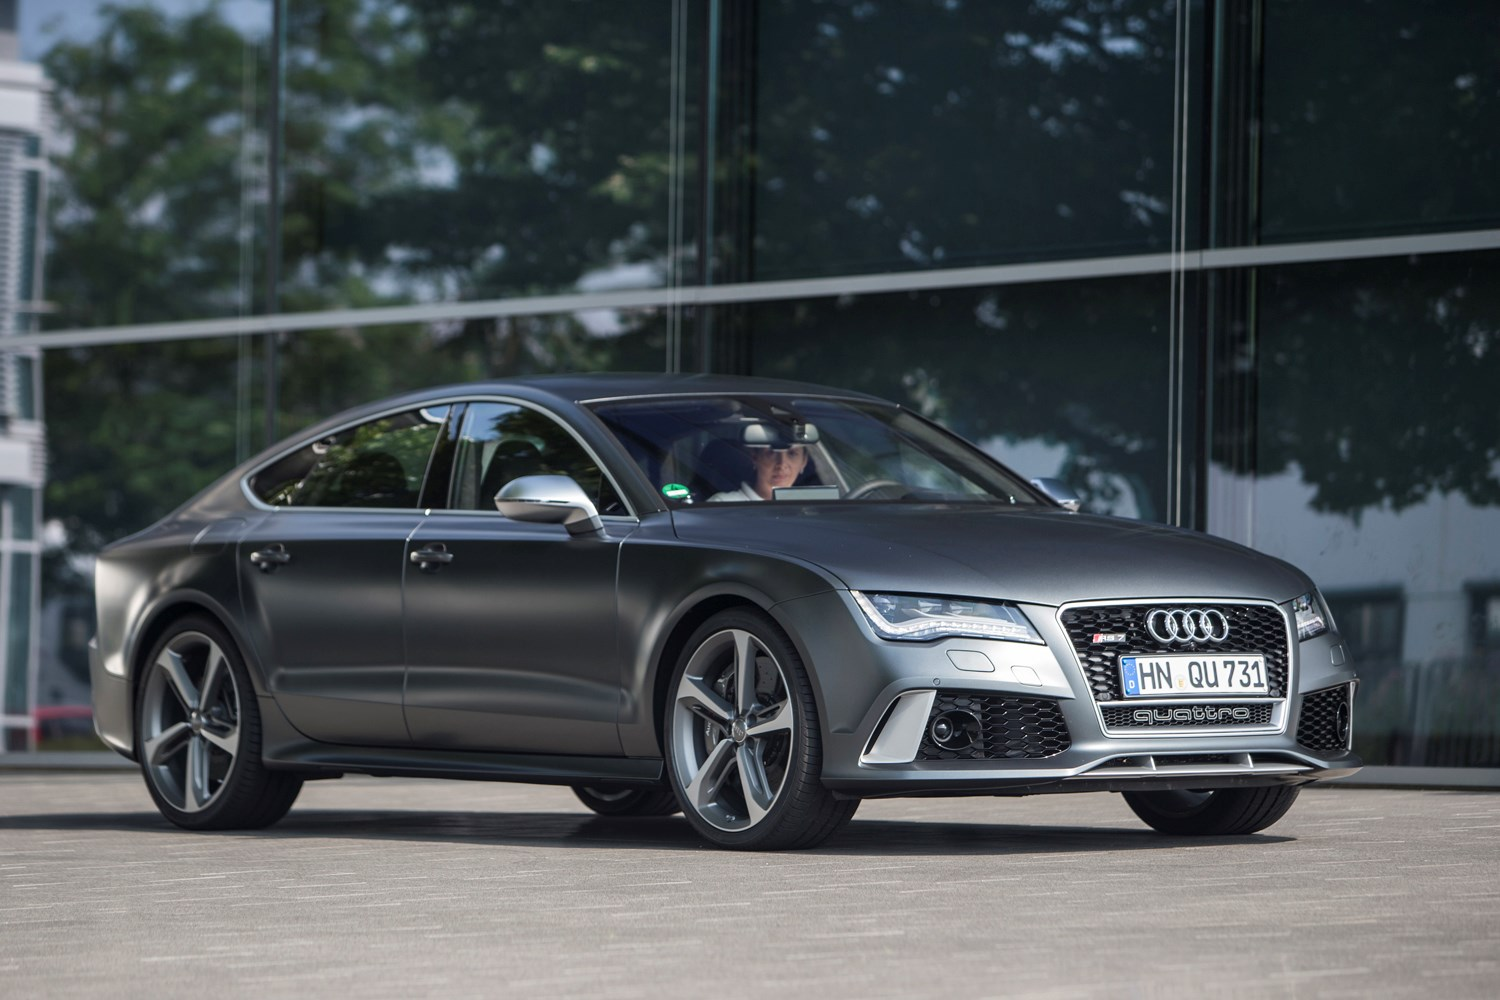 Used Audi A7 RS7 Sportback (2013 - 2018) Review